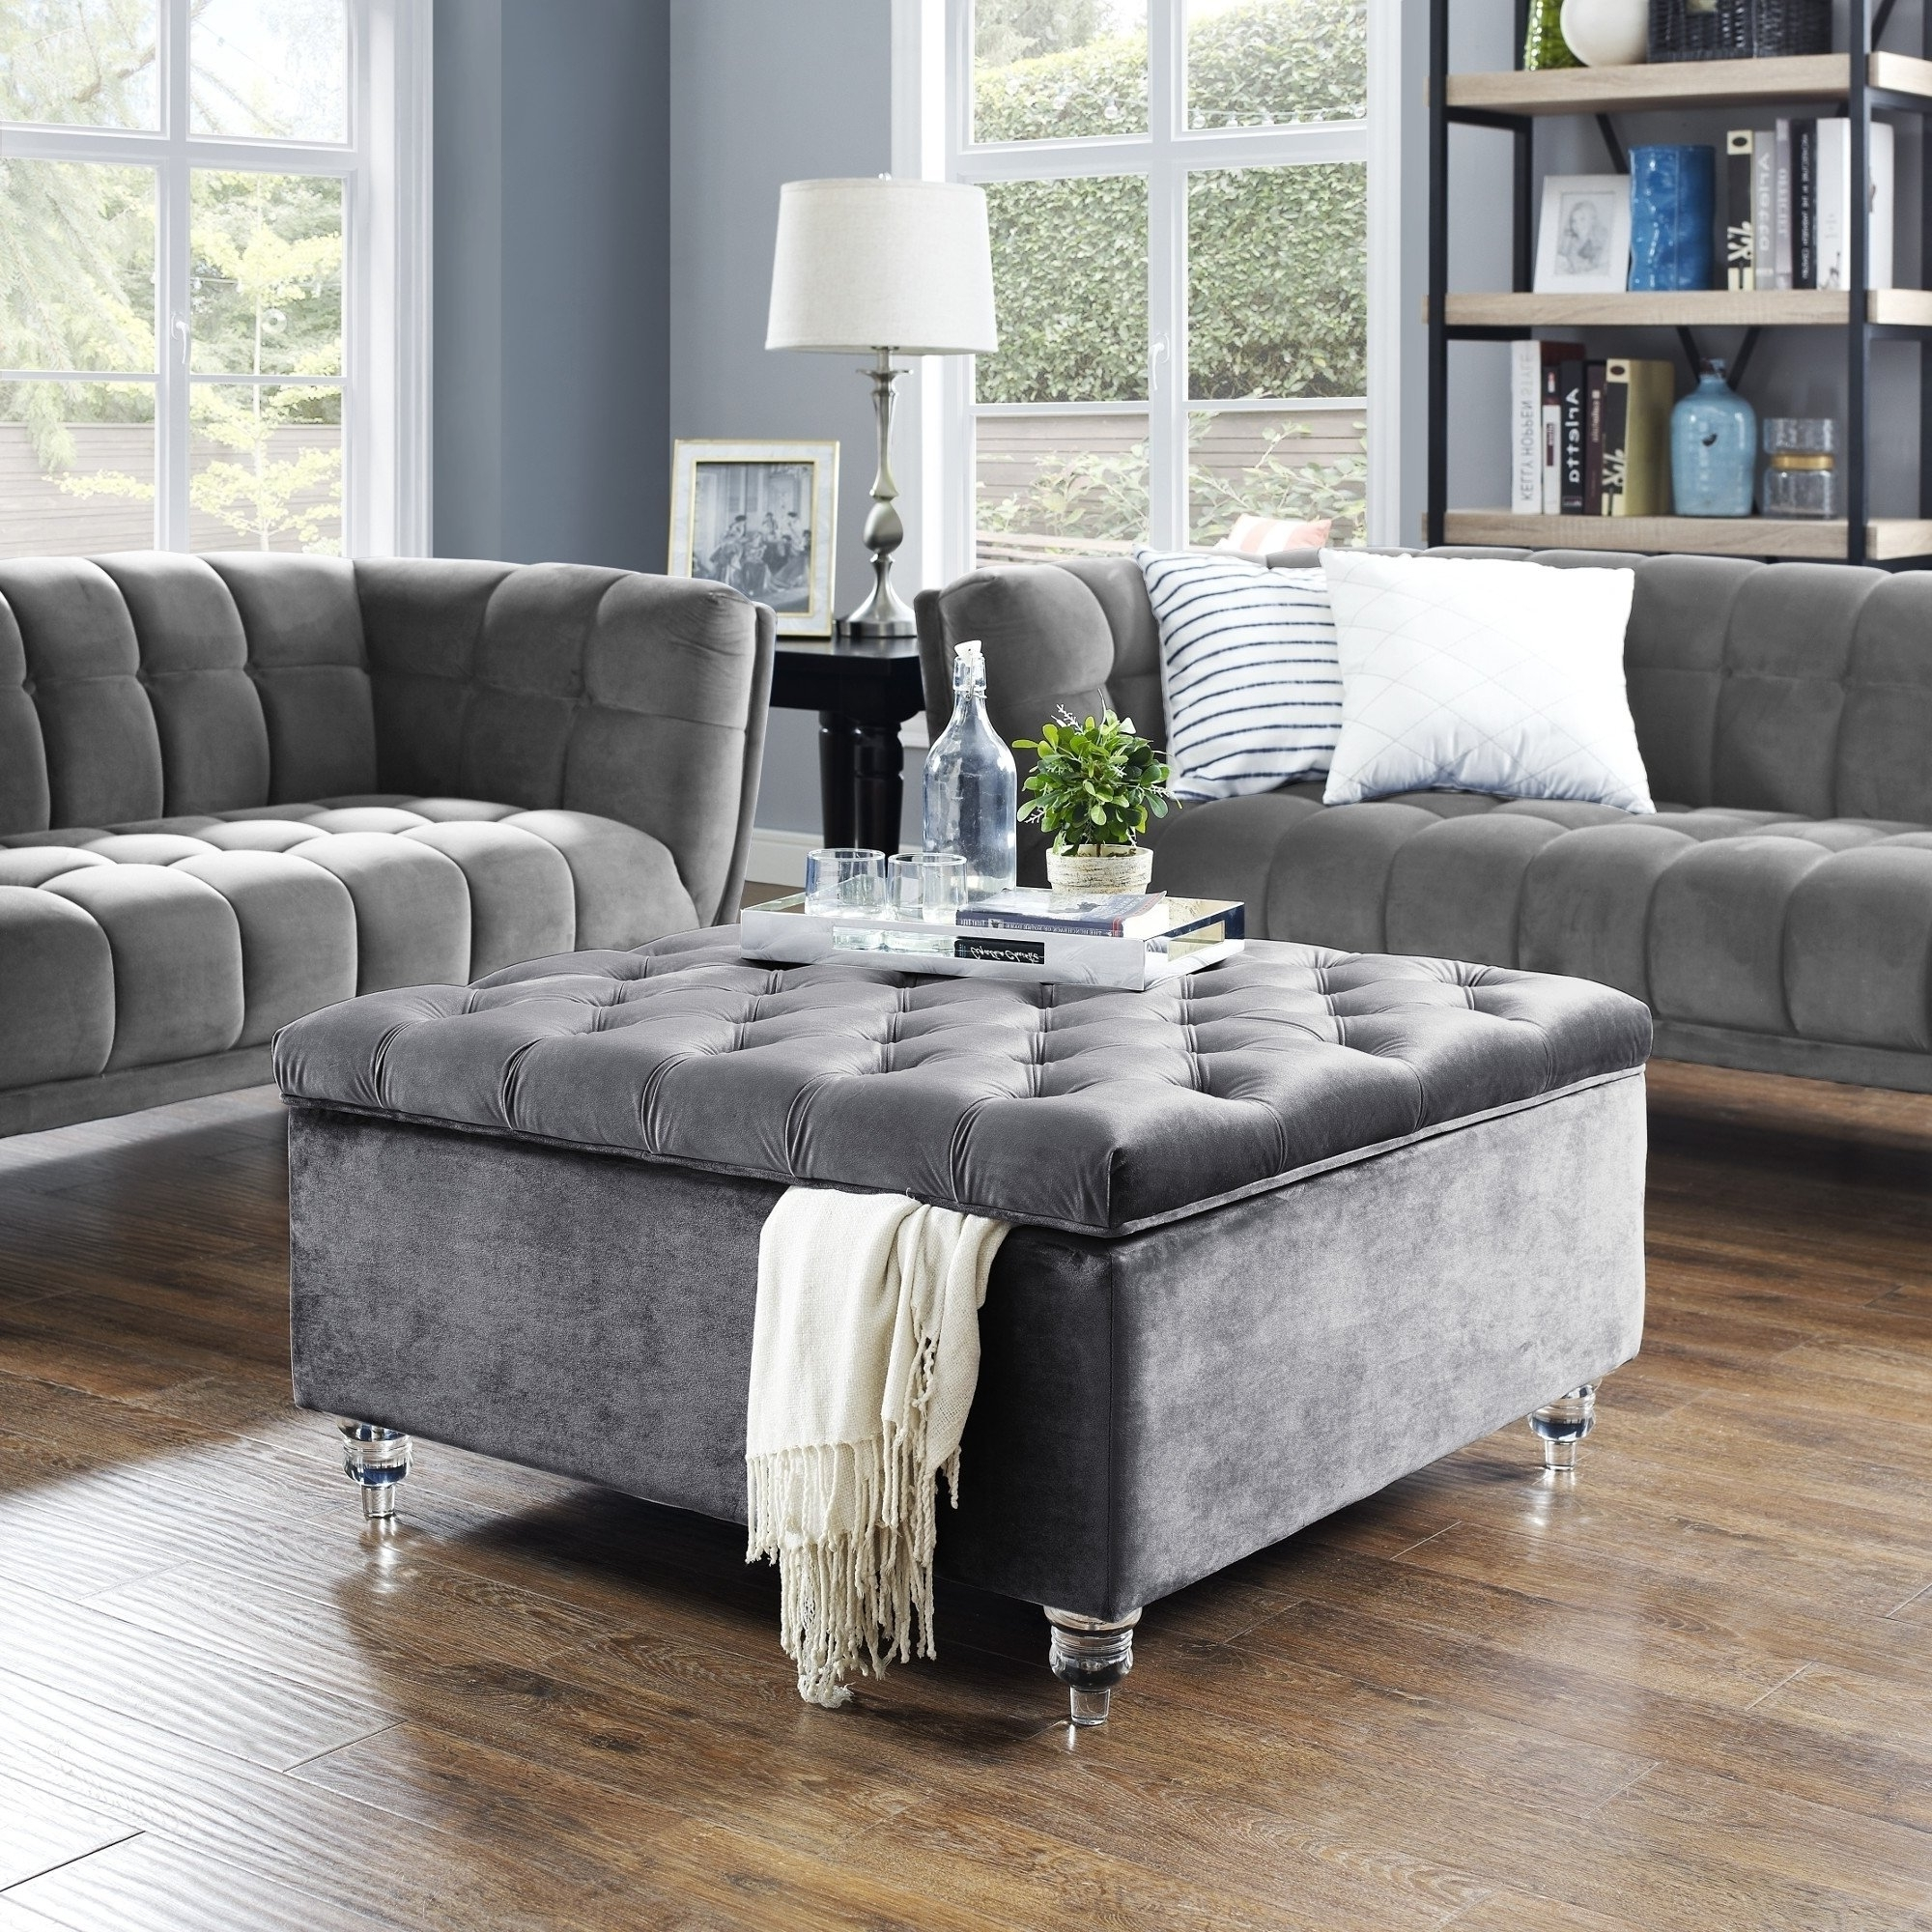 Fashionable Button Tufted Coffee Tables Within Shop Belini Modern Velvet Button Tufted Storage Ottoman/coffee Table (View 6 of 20)